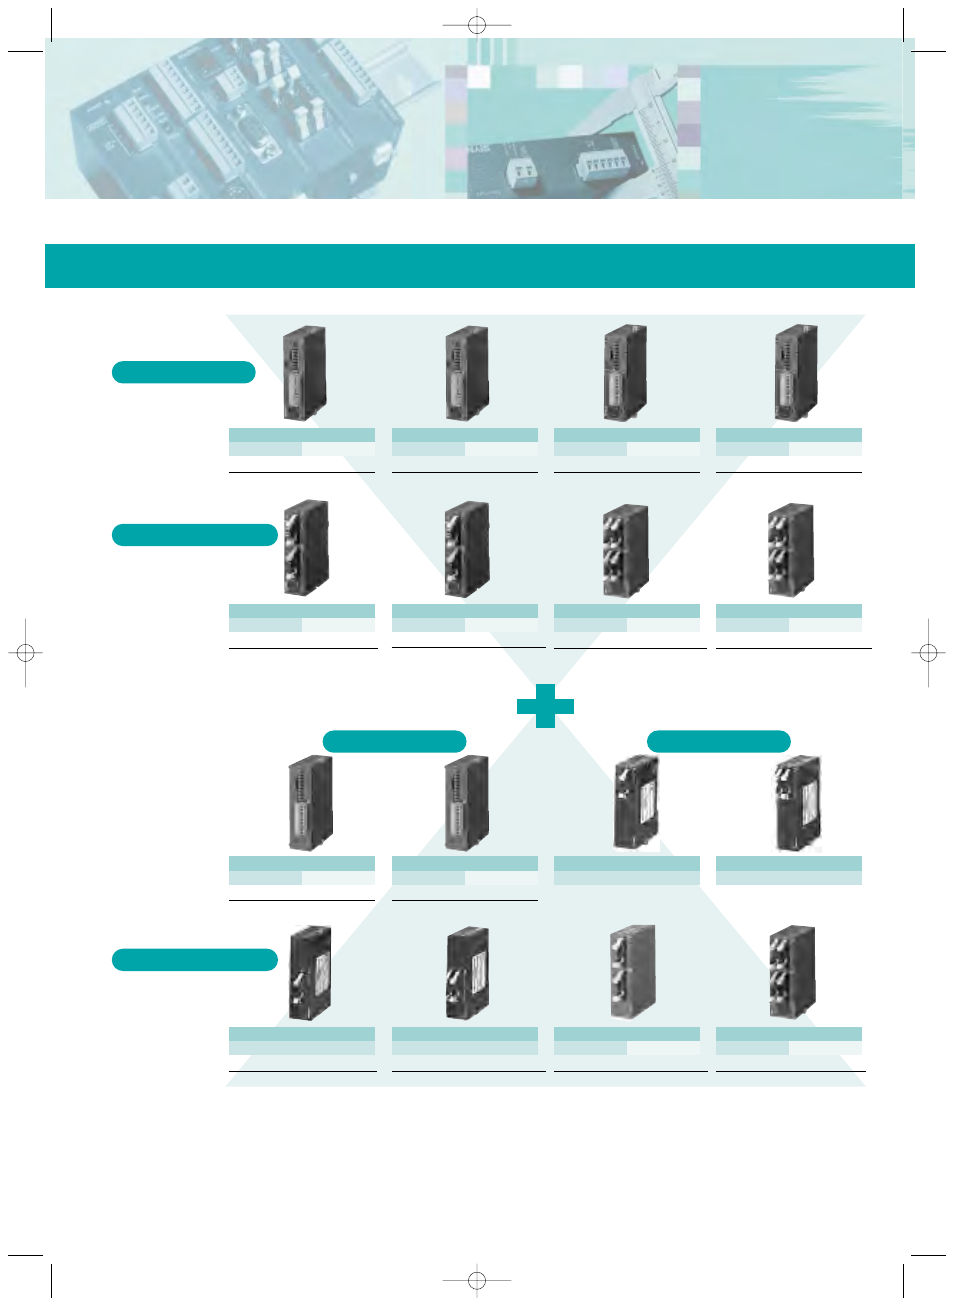 Fp0 control and expansion units, Products and order numbers ...